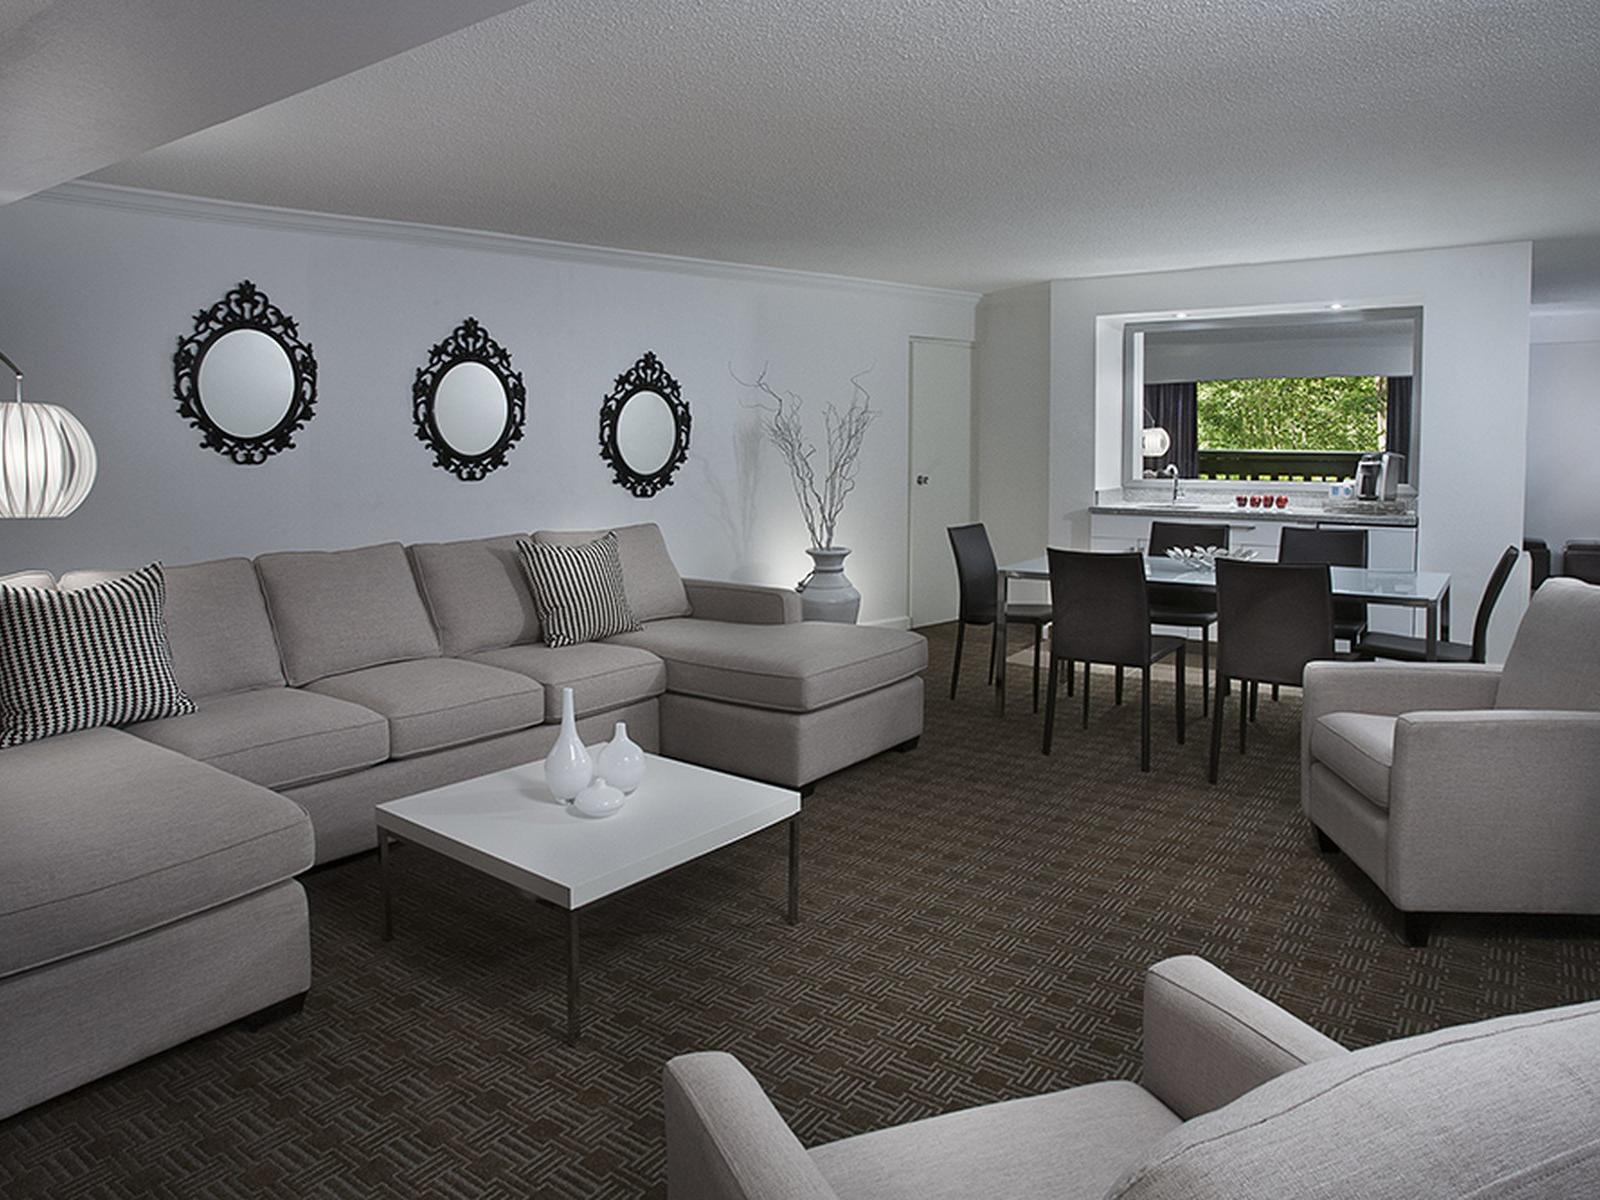 Spacious seating area in hotel room